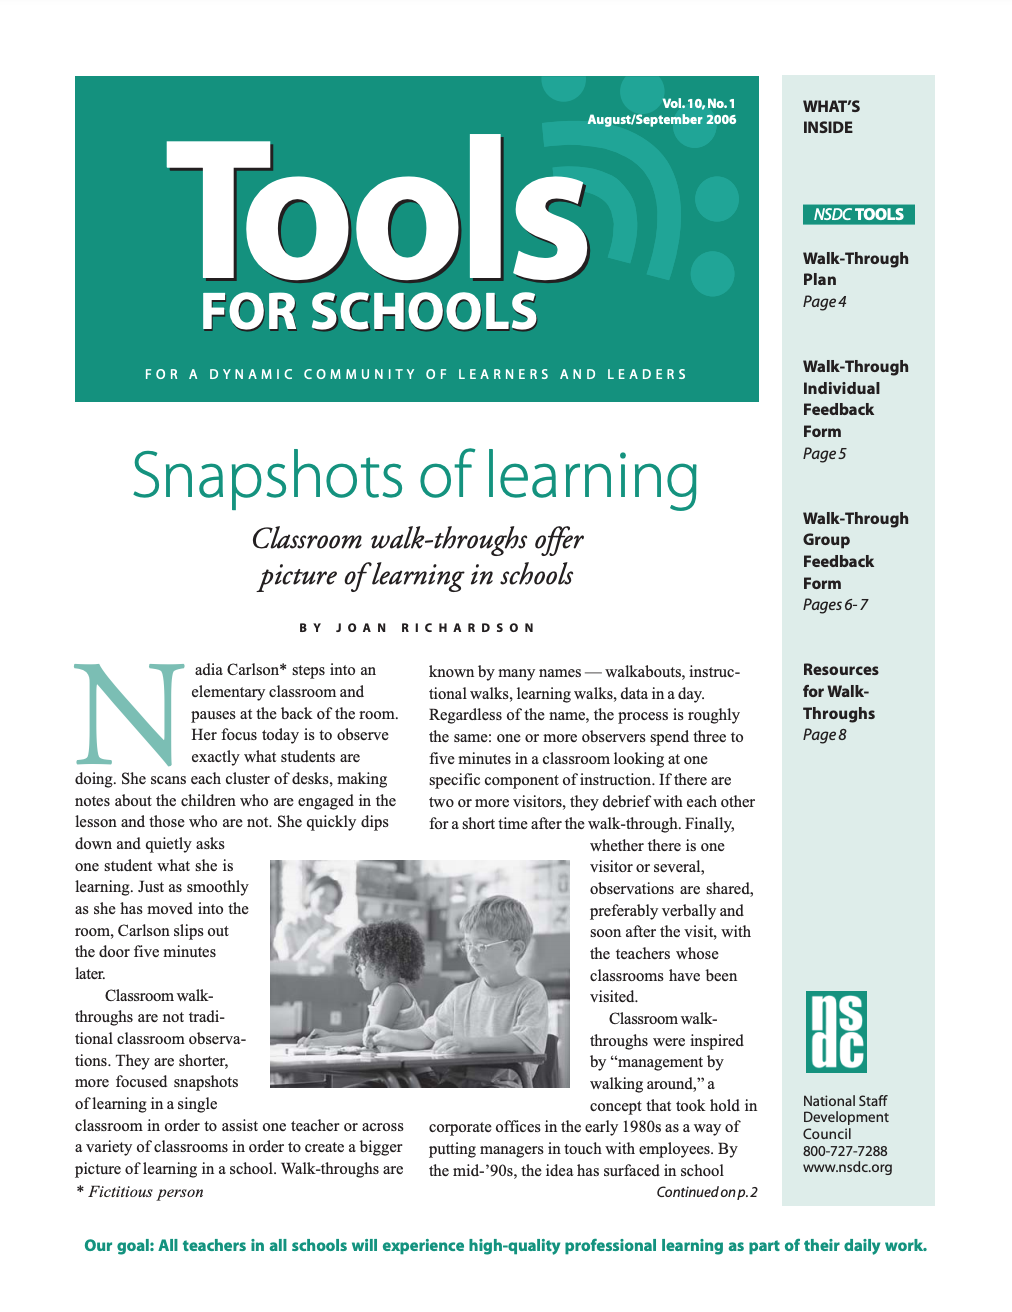 tools-for-schools-august-september-2006-vol-10-no-1